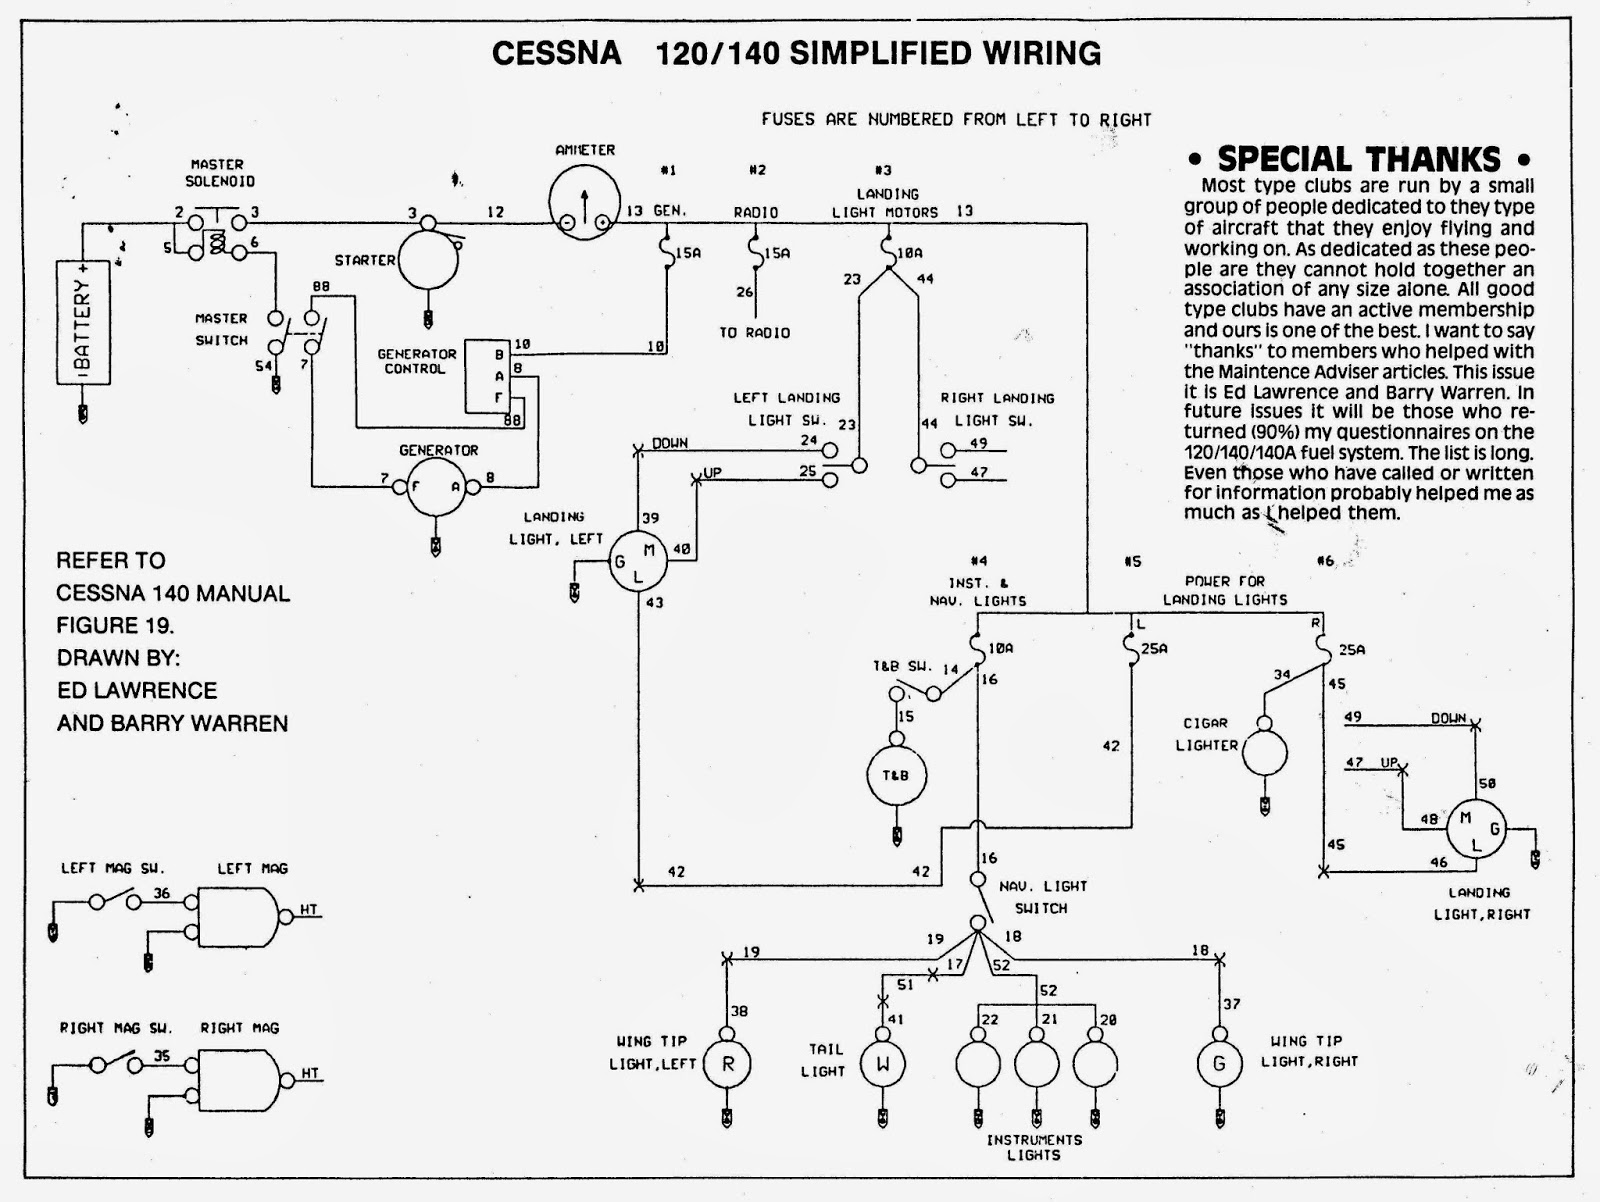 C 140+Simple+Wiring cessna 140 rebirth electrical loads & wiring cessna 300 nav comm wiring diagram at reclaimingppi.co